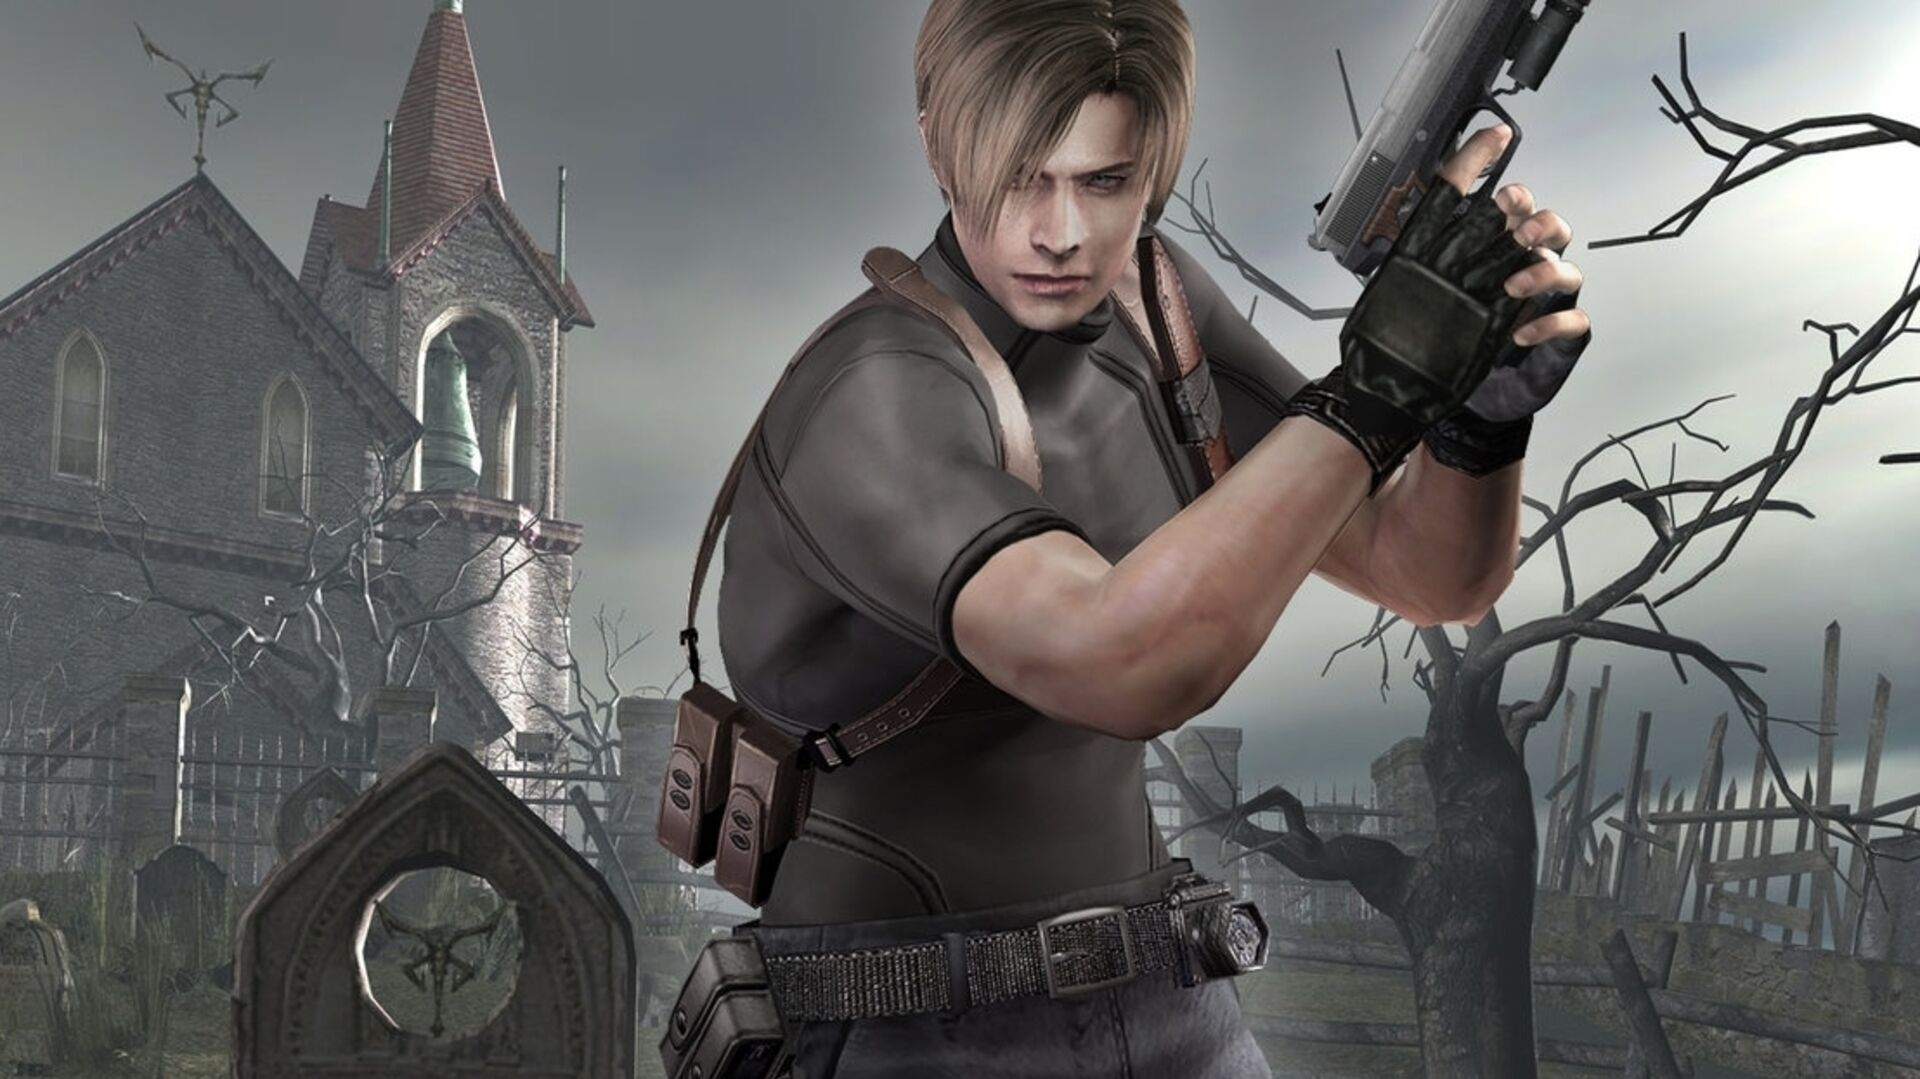 Resident Evil 4 Sent The Series On A Downward Spiral From Which